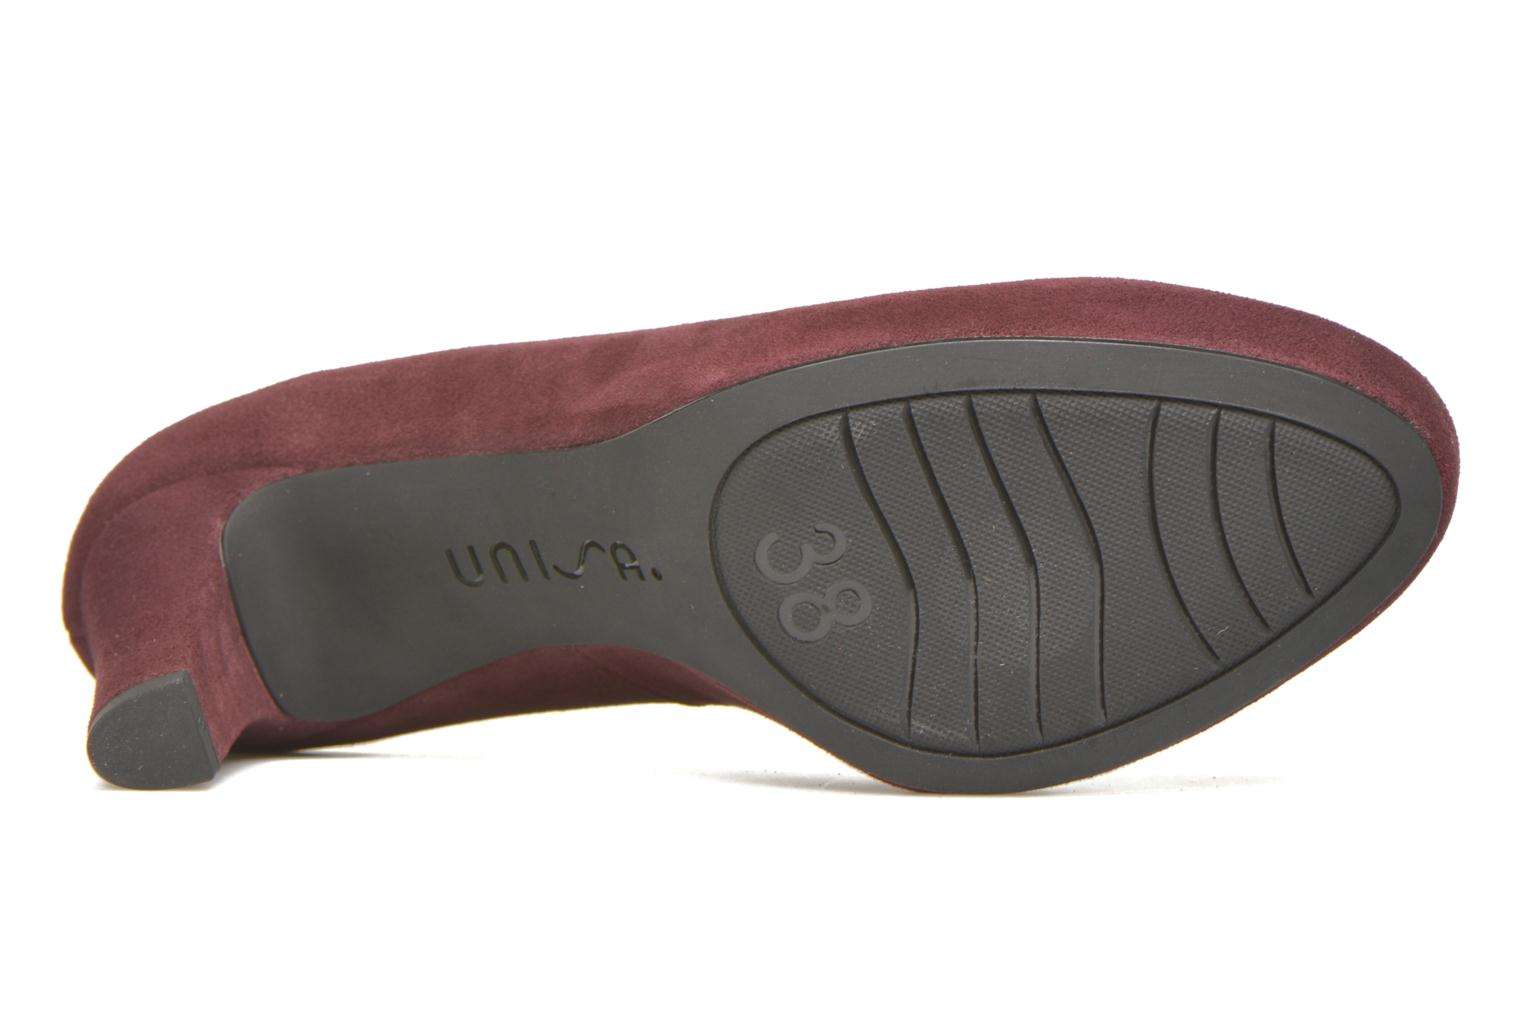 Numis kid suede grape